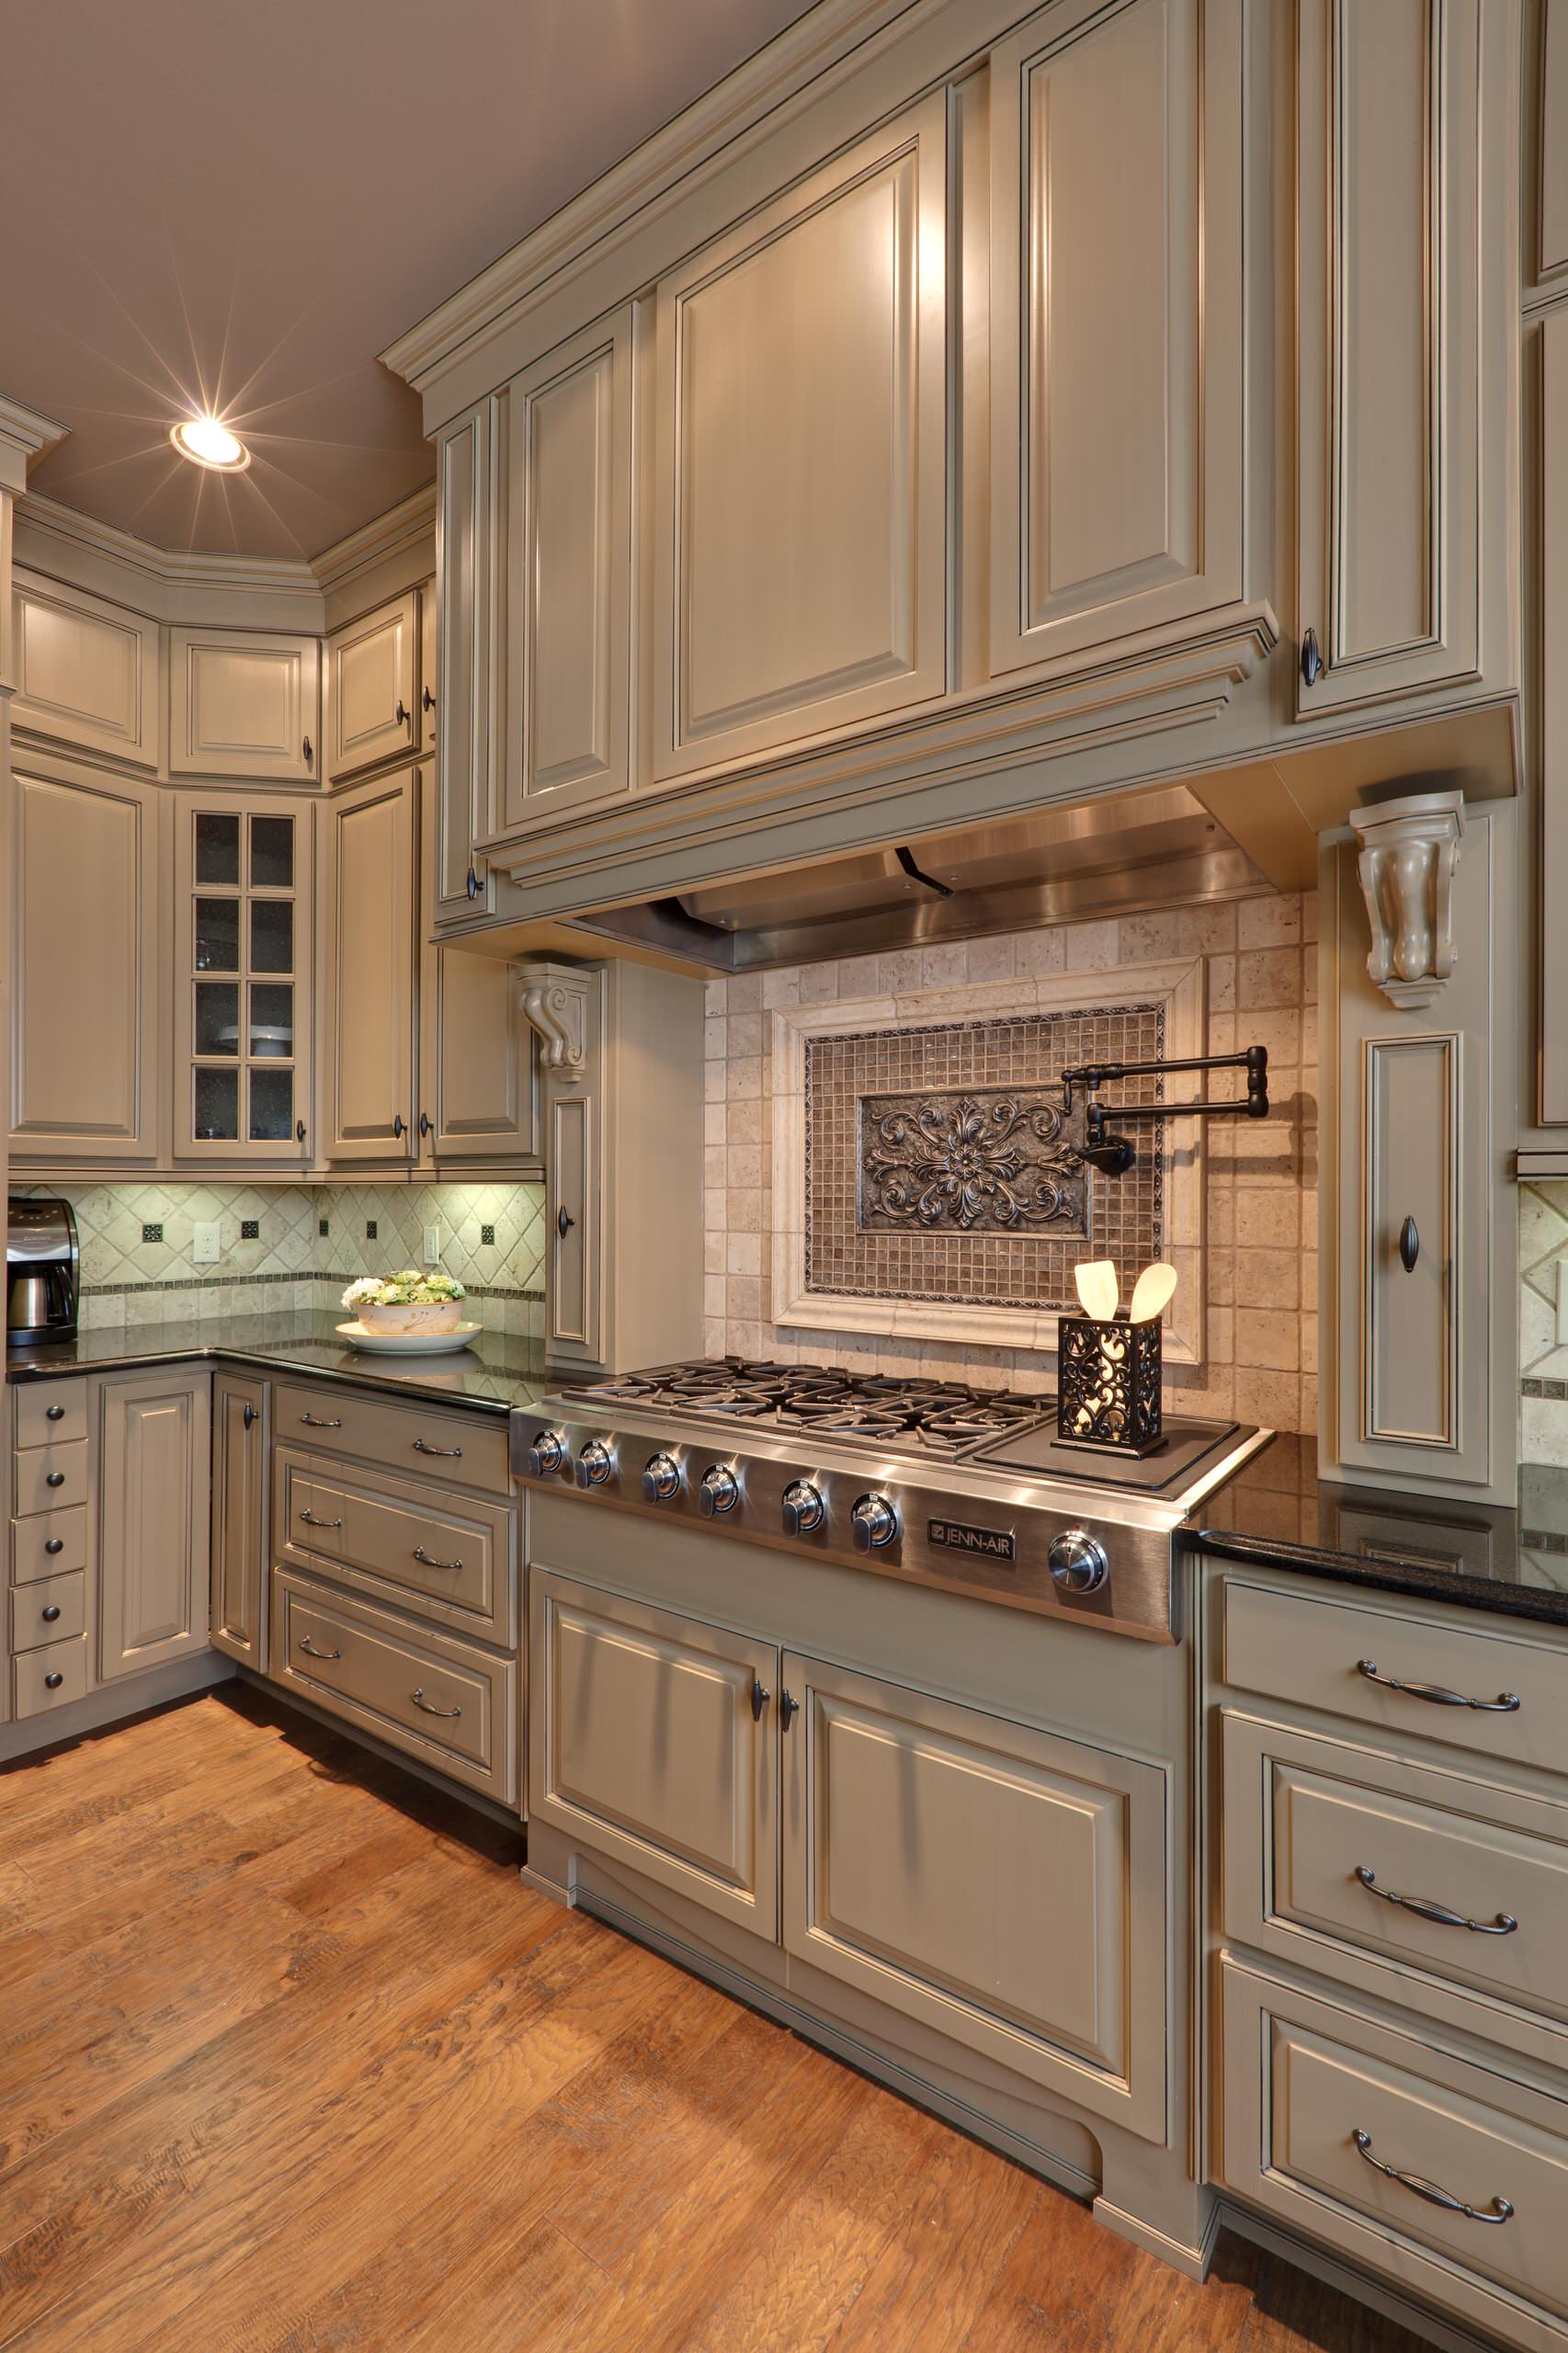 75 Beautiful Kitchen With Beige Cabinets Pictures Ideas April 2021 Houzz